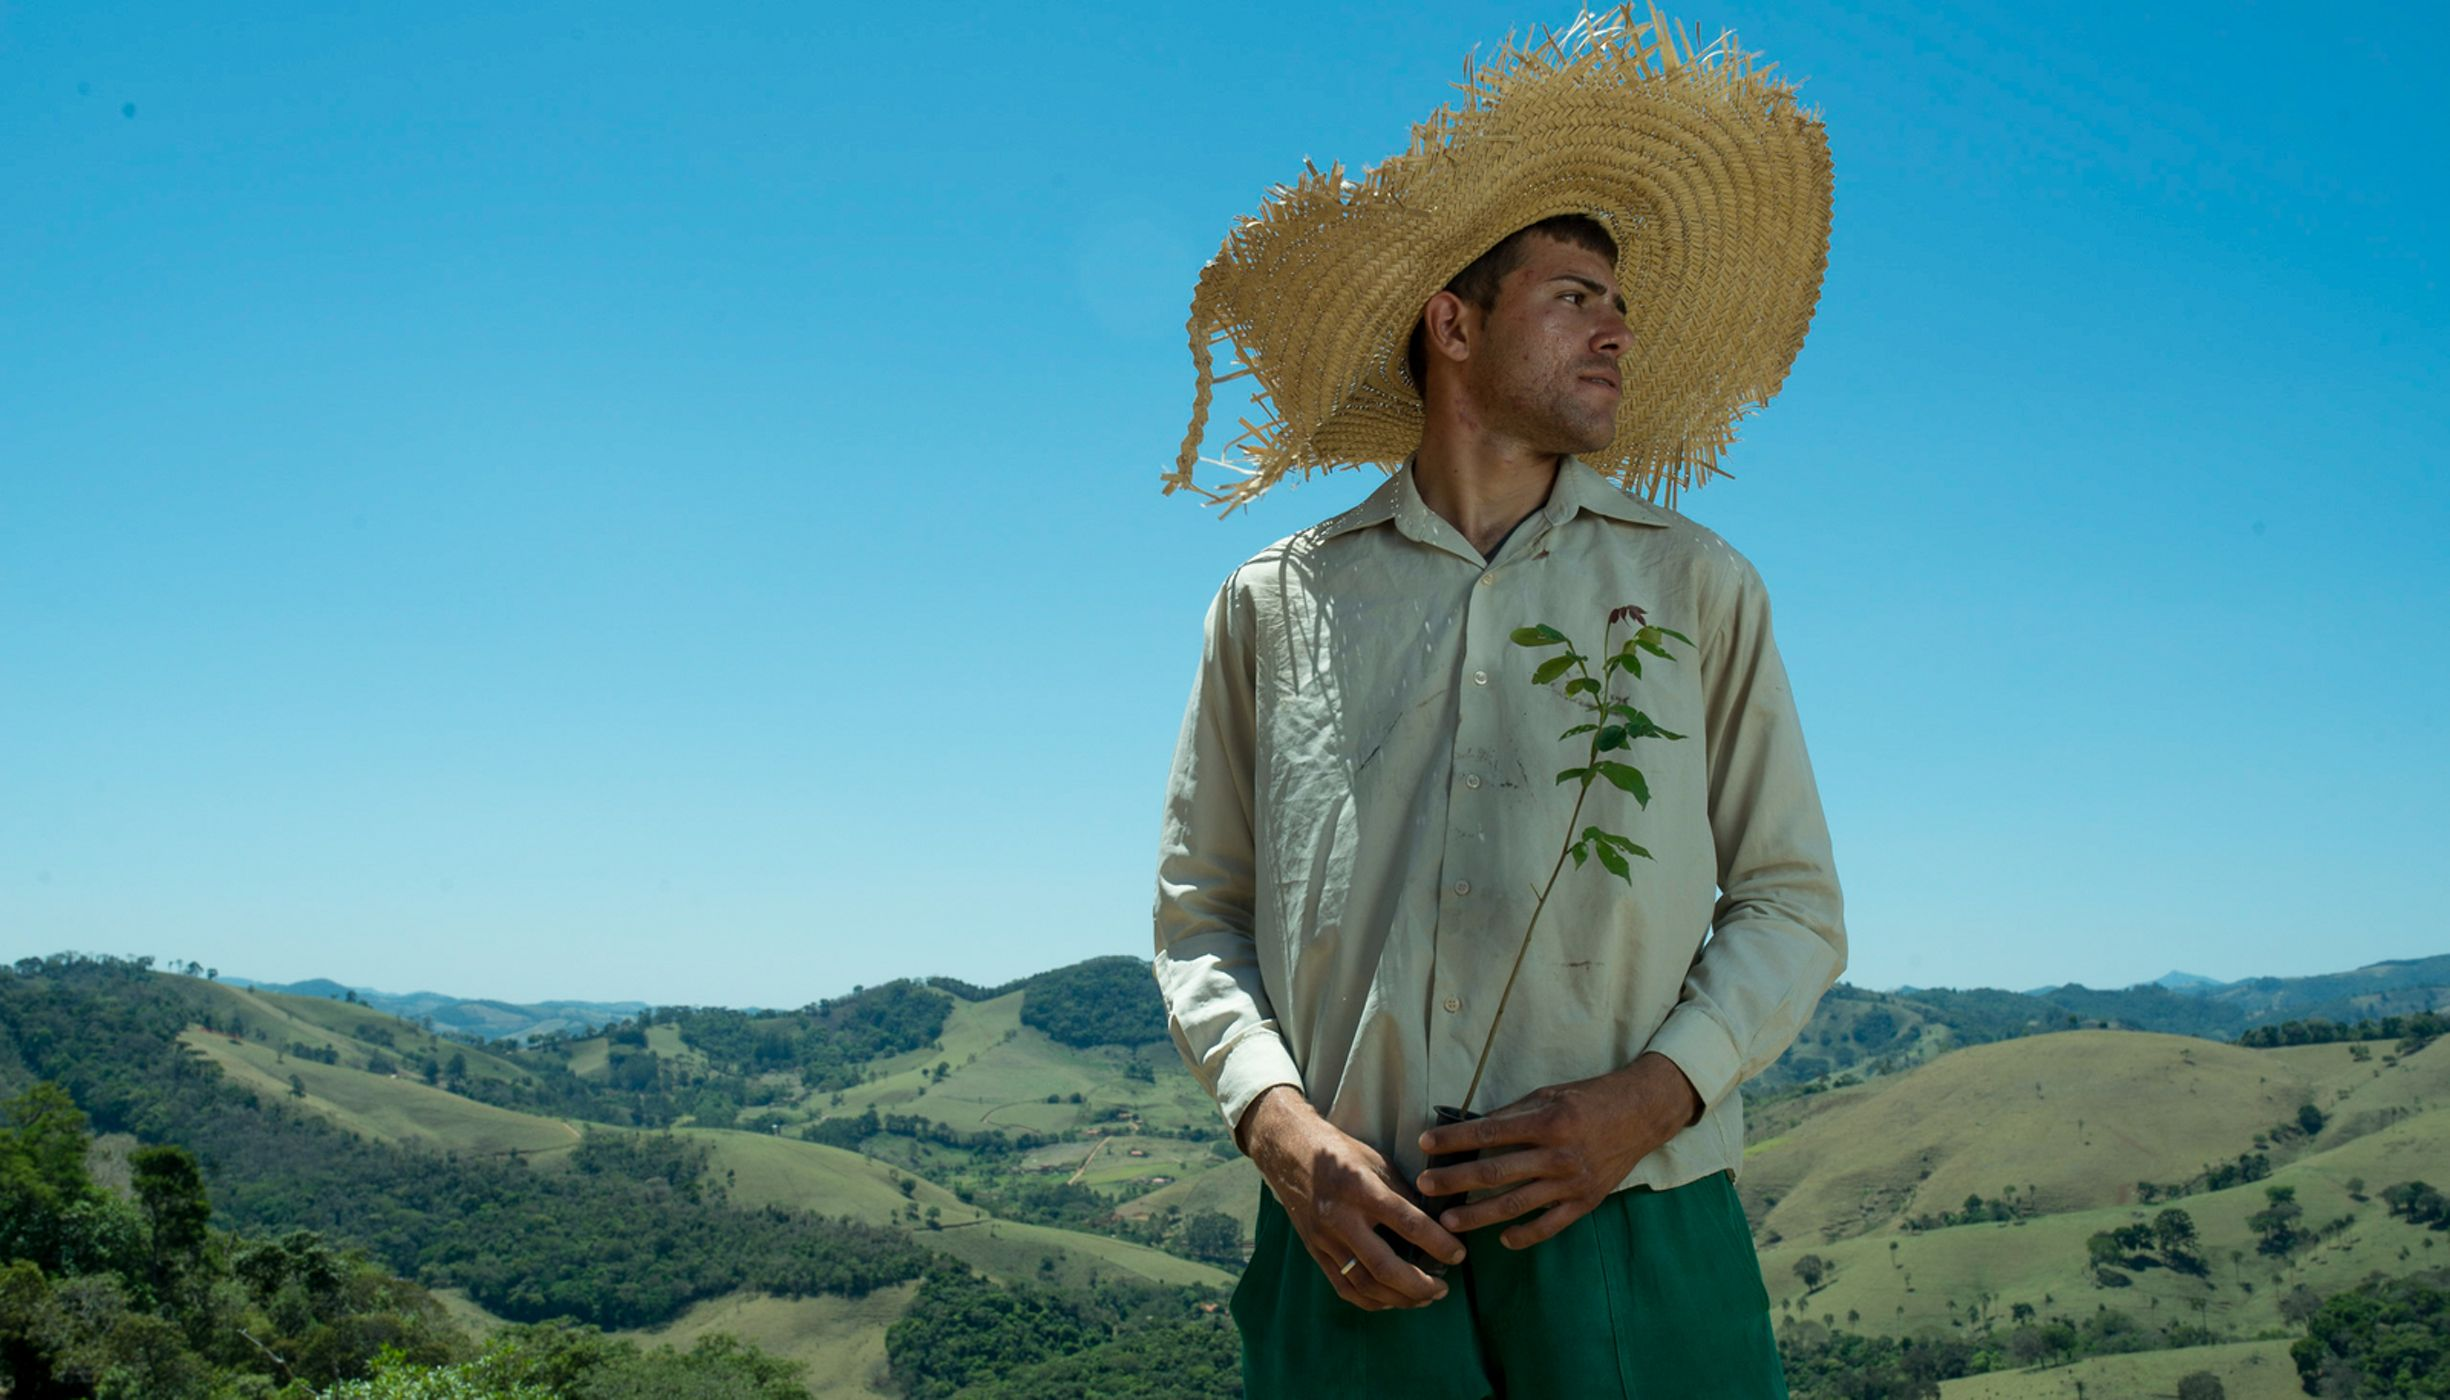 Vinicius Uchoa, a local tree planter, is helping reforest the Mantiqueria Range of Brazil's much-depleted Atlantic Forest.